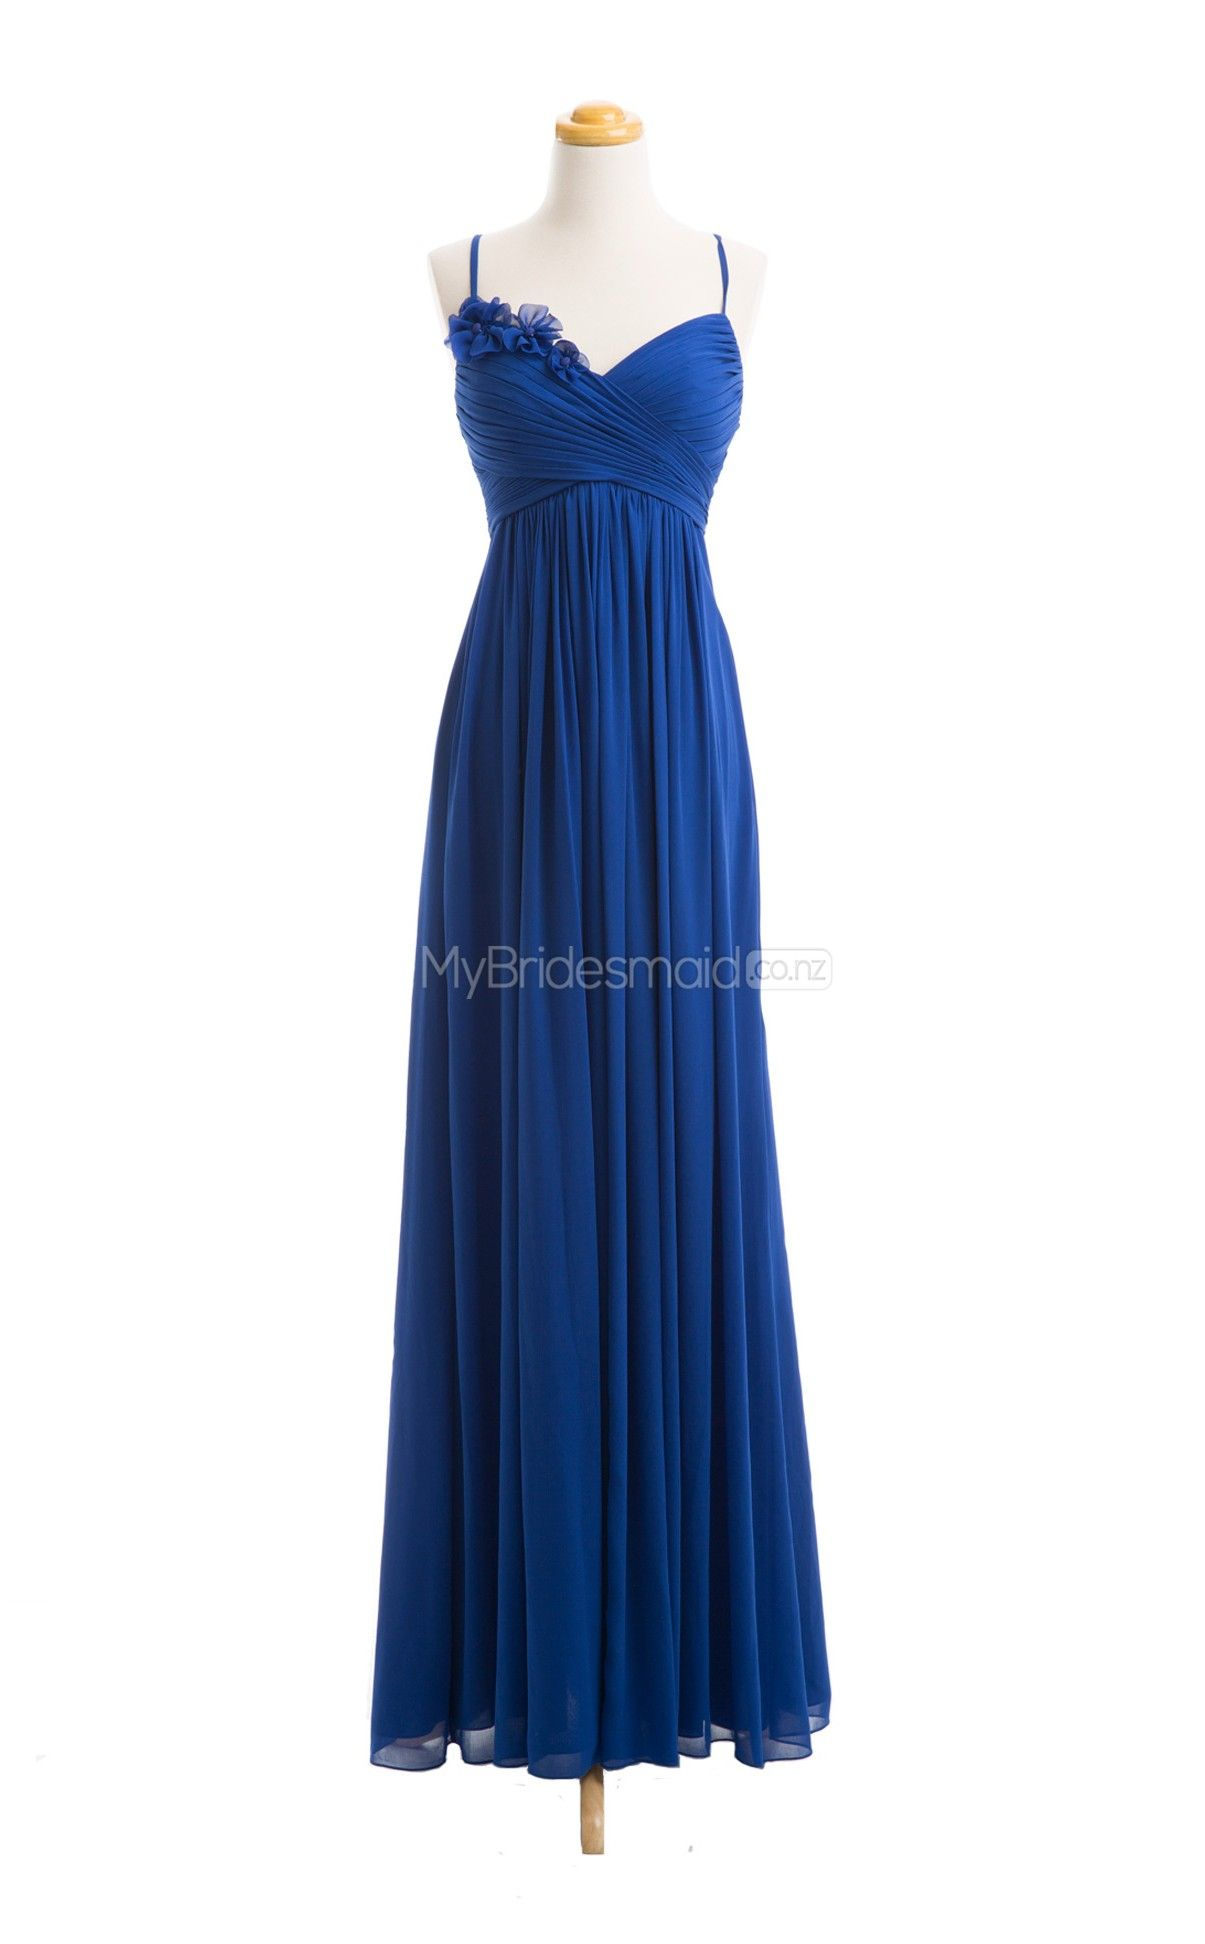 Sexy Royal Blue Long Bridesmaid Dresses,Long Bridesmaid Dress